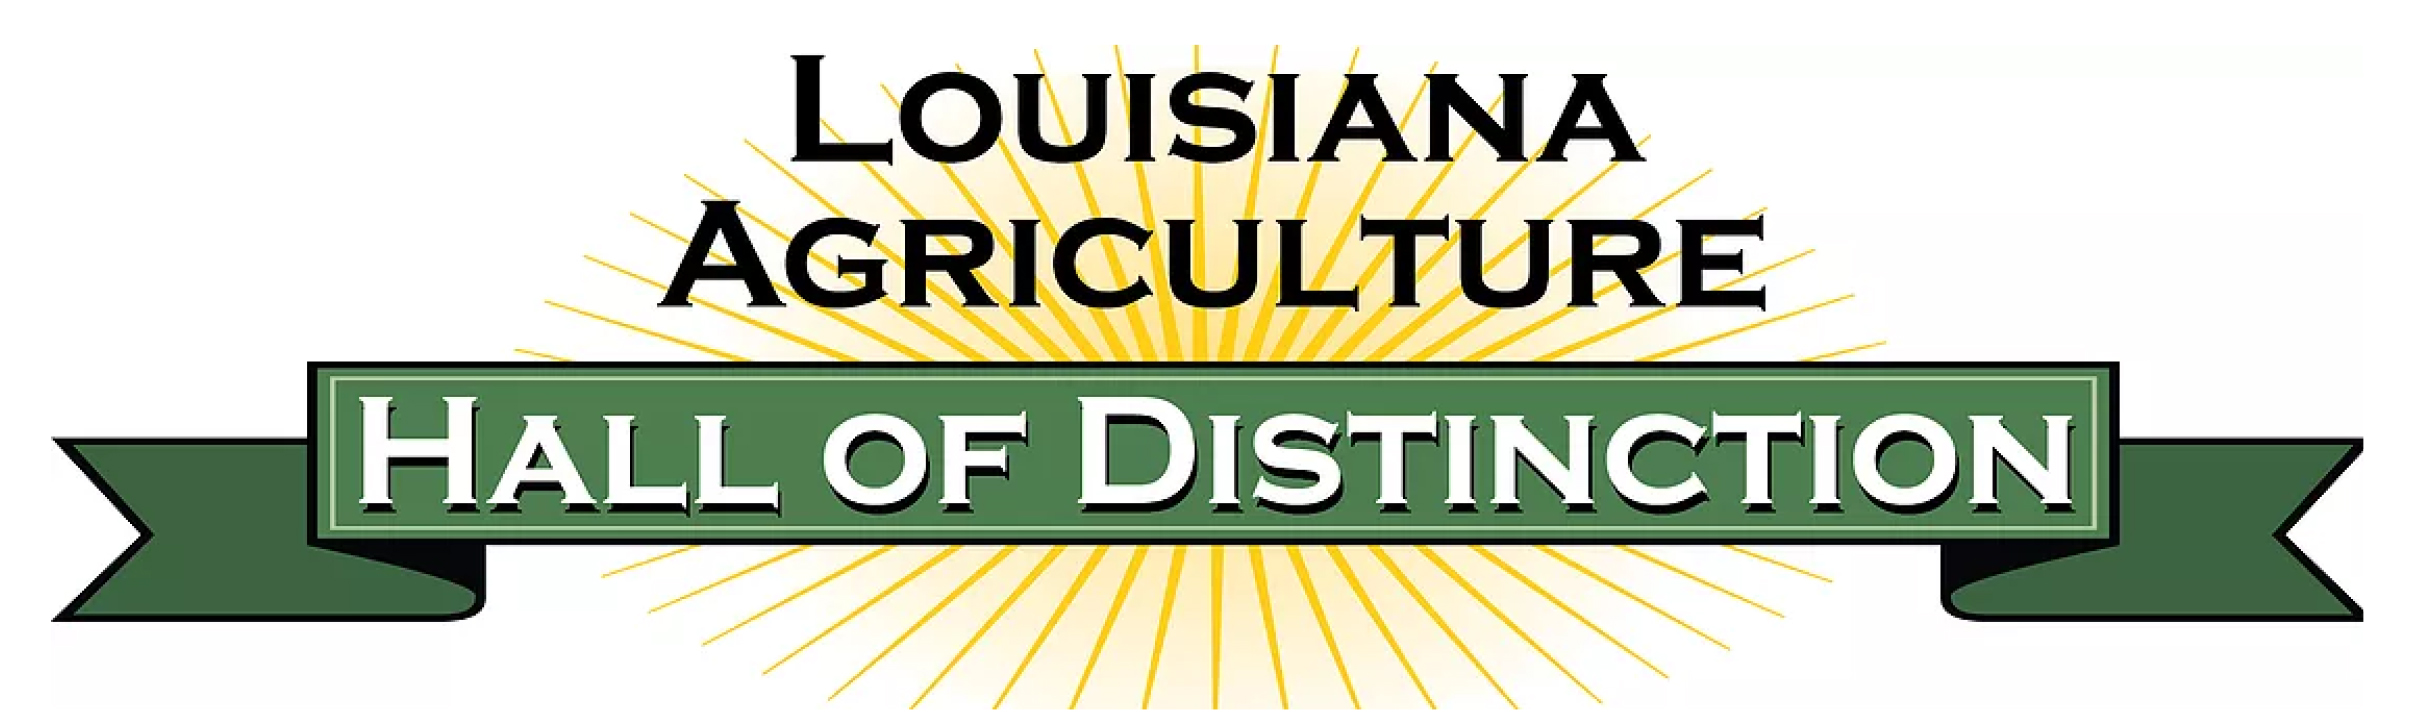 Nominations open for Louisiana Agriculture Hall of Distinction